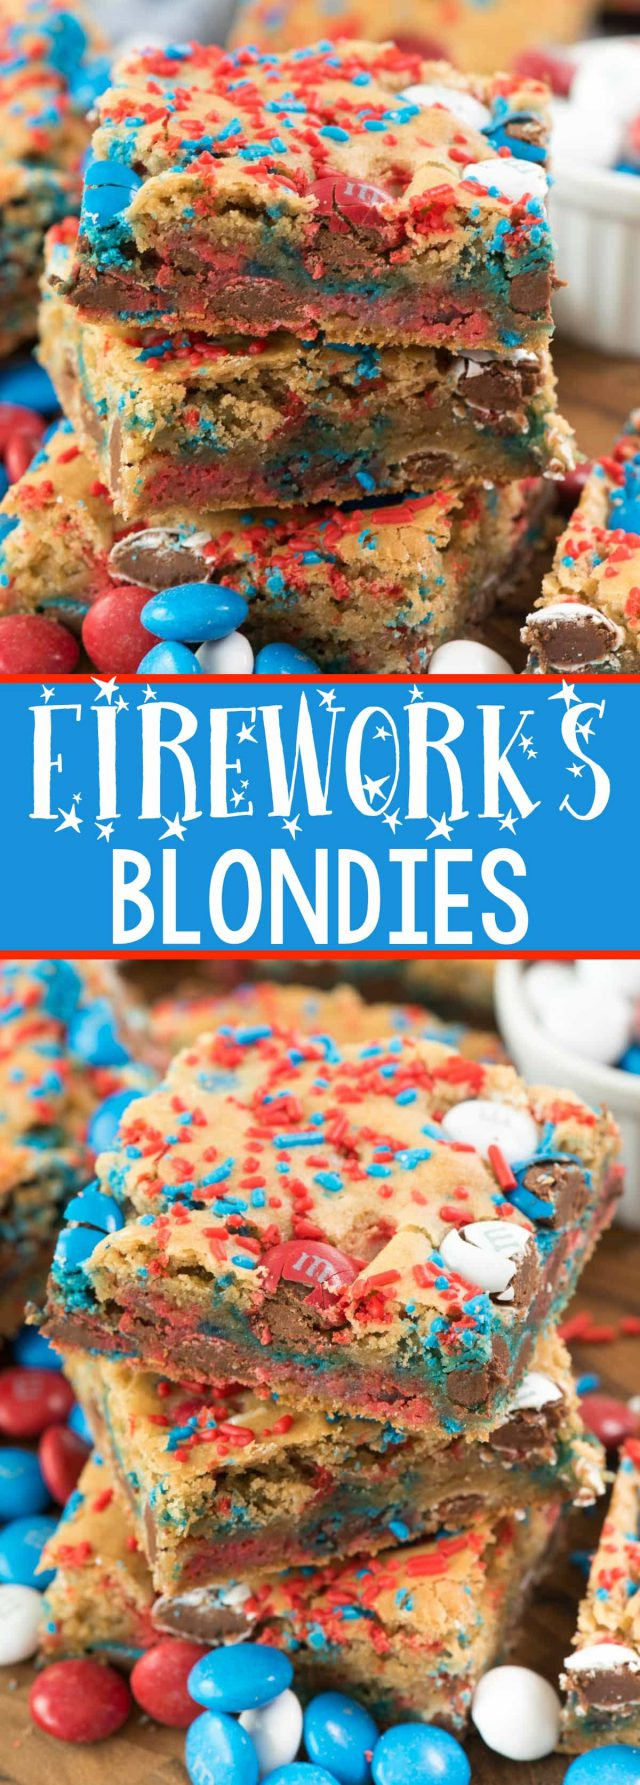 Fireworks Blondies - this EASY blondie recipe is the BEST EVER COOKIE BAR! It's so soft and perfect with any additions, but especially with 4th of July M&Ms and sprinkles!